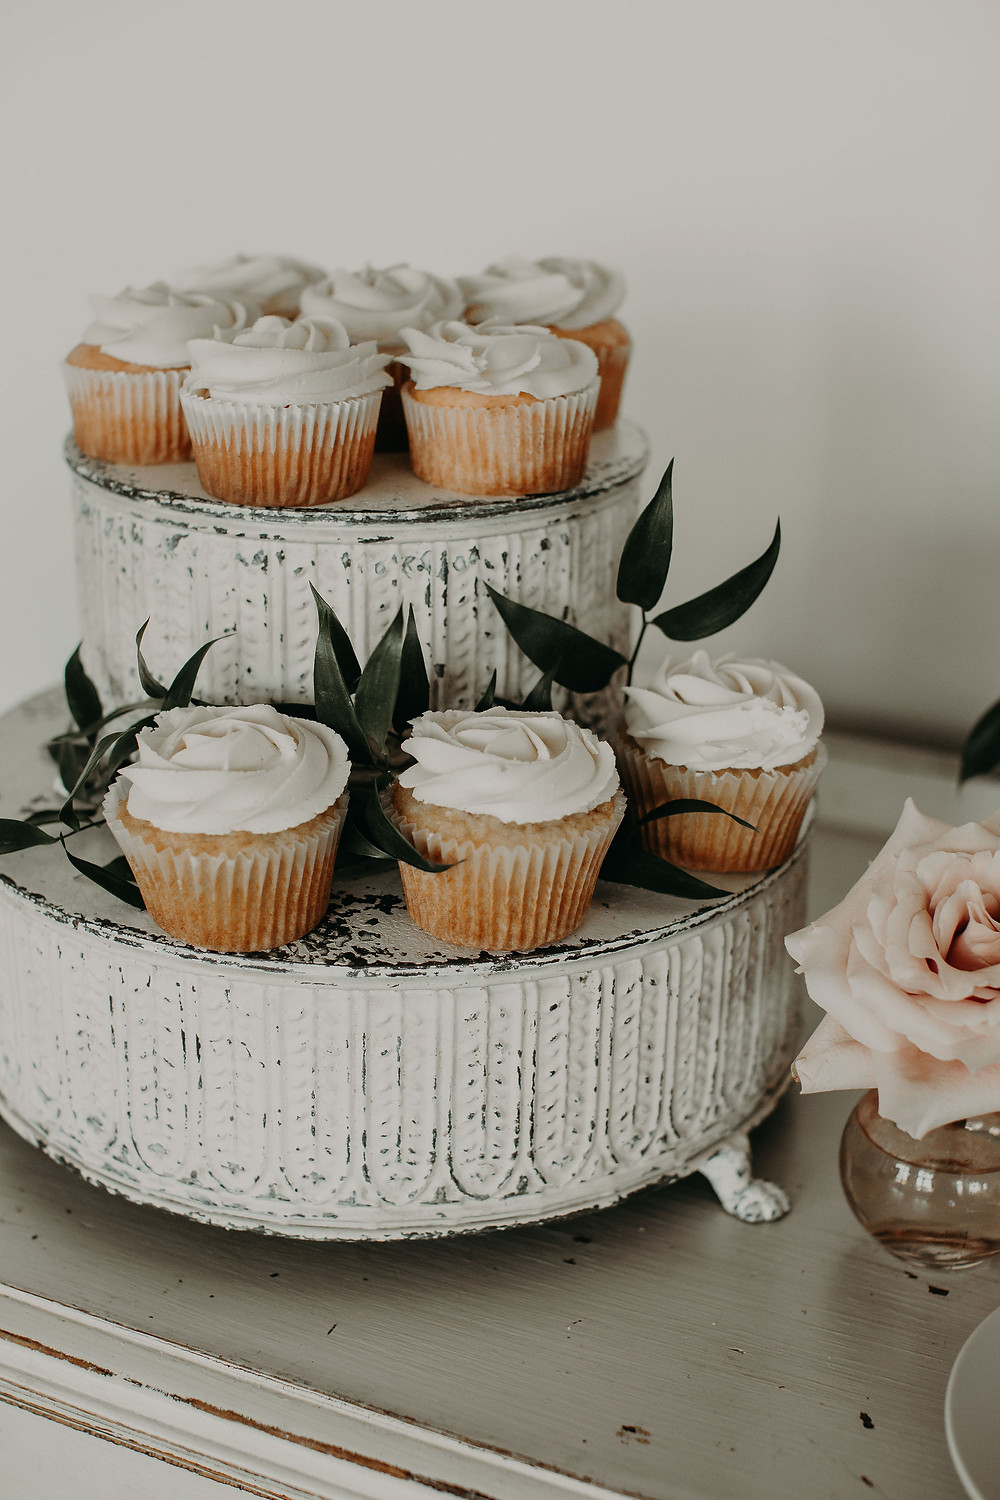 Wedding cupcake display: Summer Small Wedding at The Lincoln Loft by Pretty Little Vintage Co.